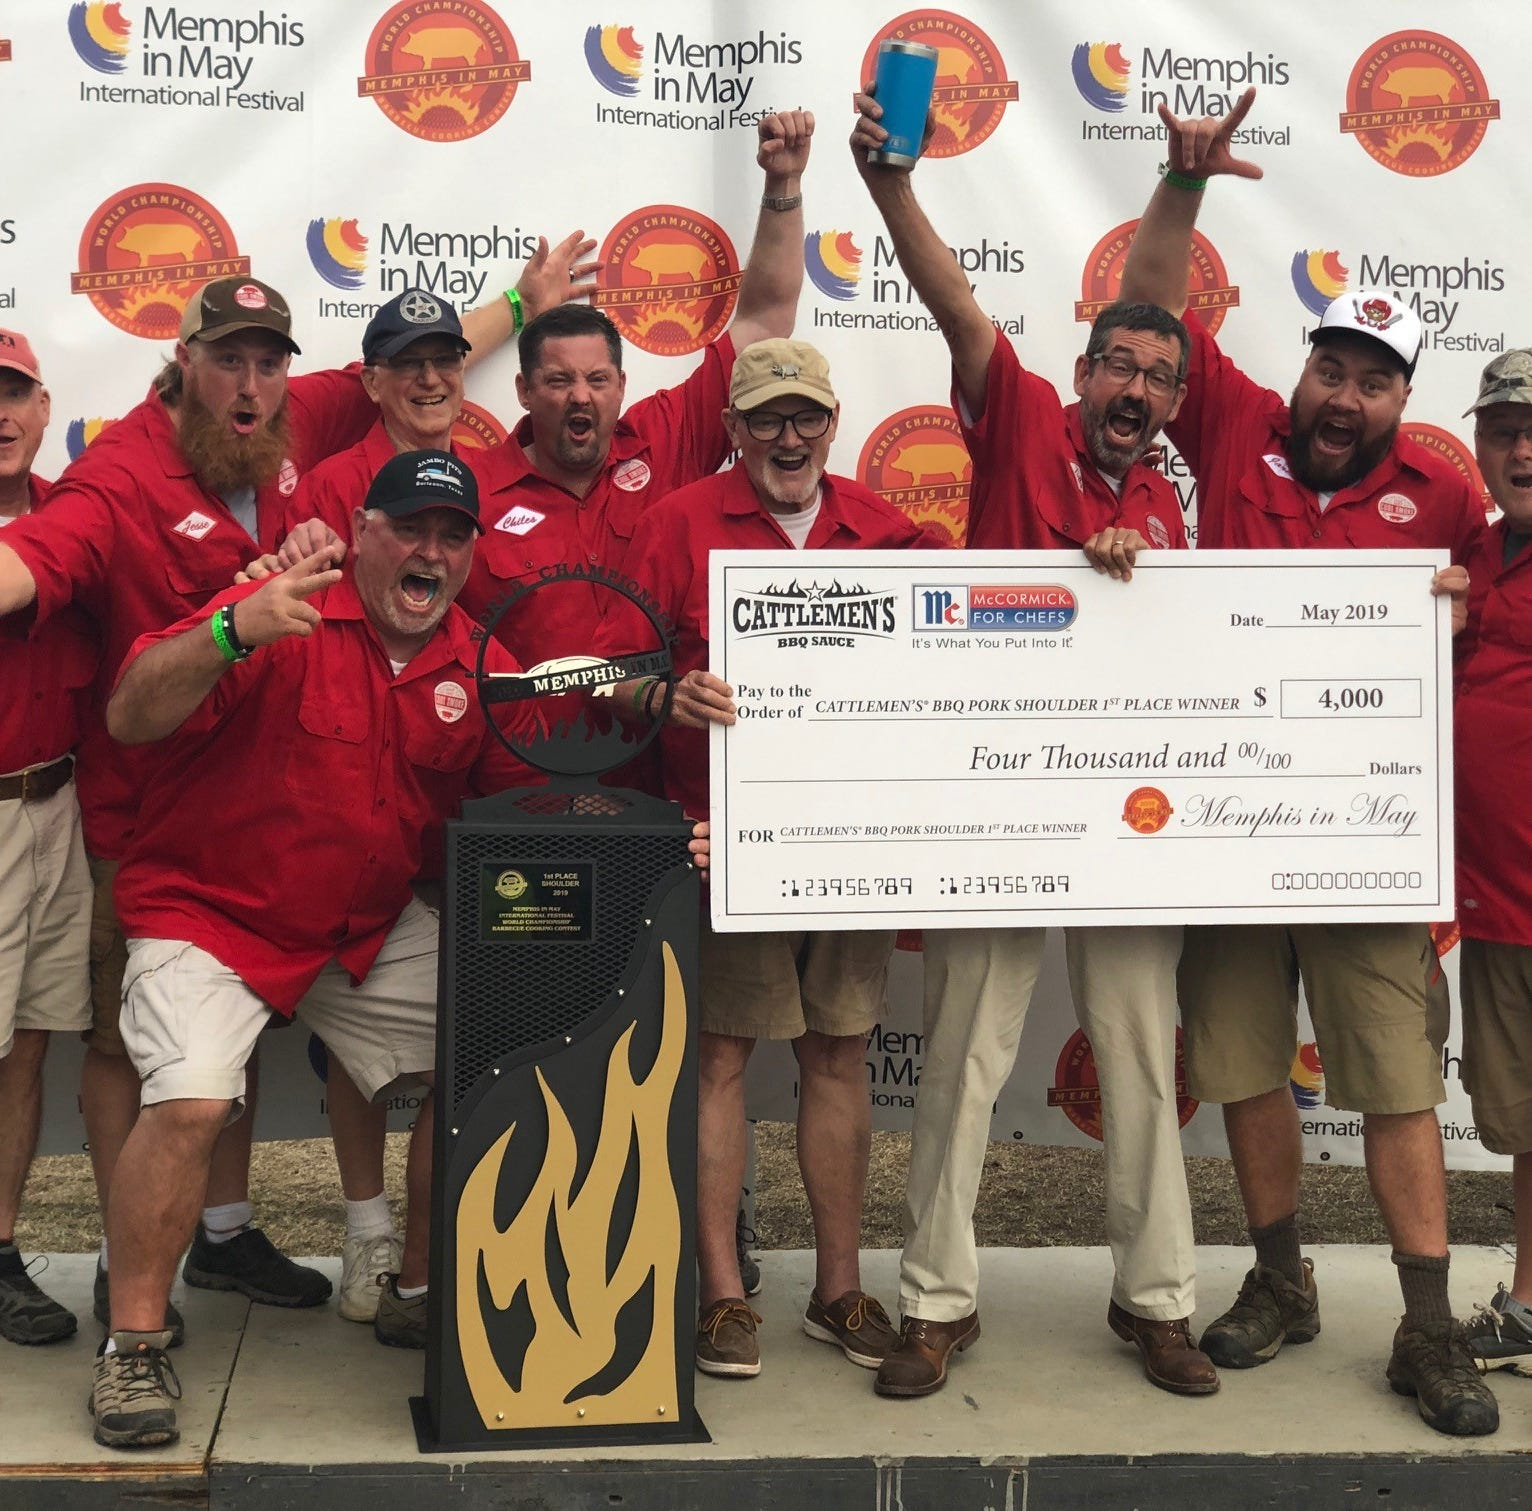 Memphis in May: Meet the winners of the 2019 World Championship Barbecue Cooking Contest